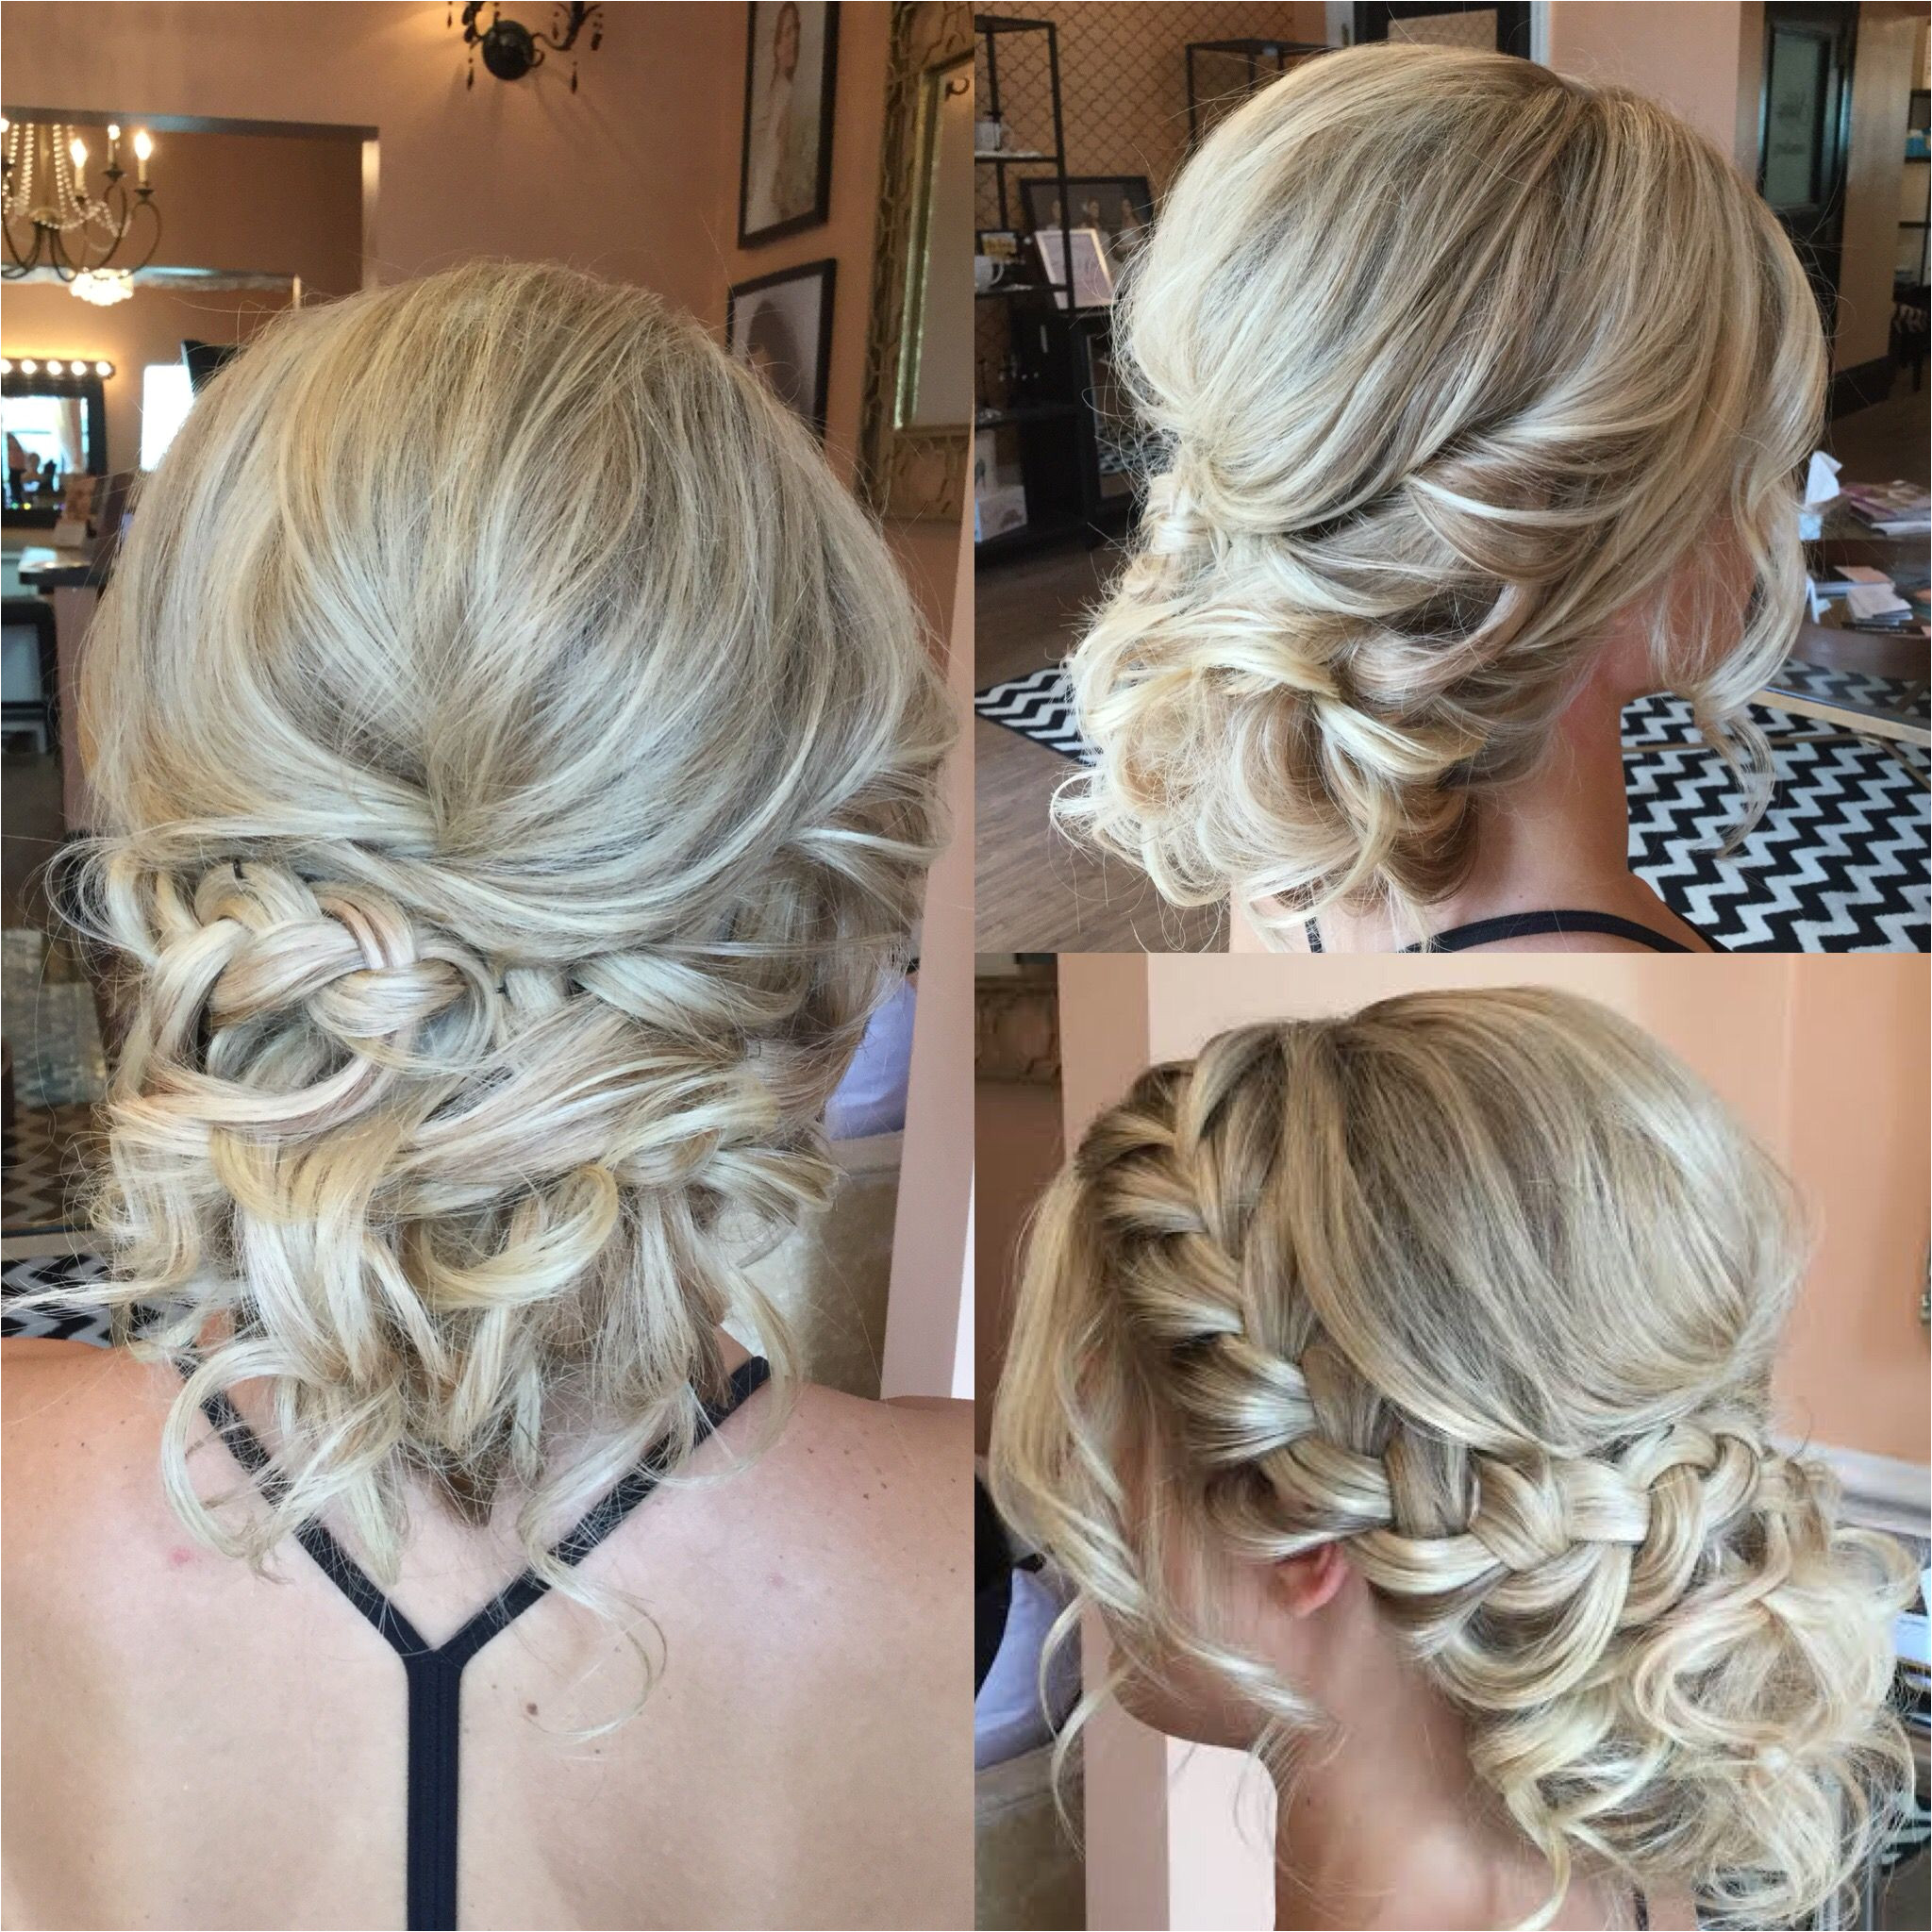 Textured up do for blondes with curls and side braid Bridal & formal hairstyle